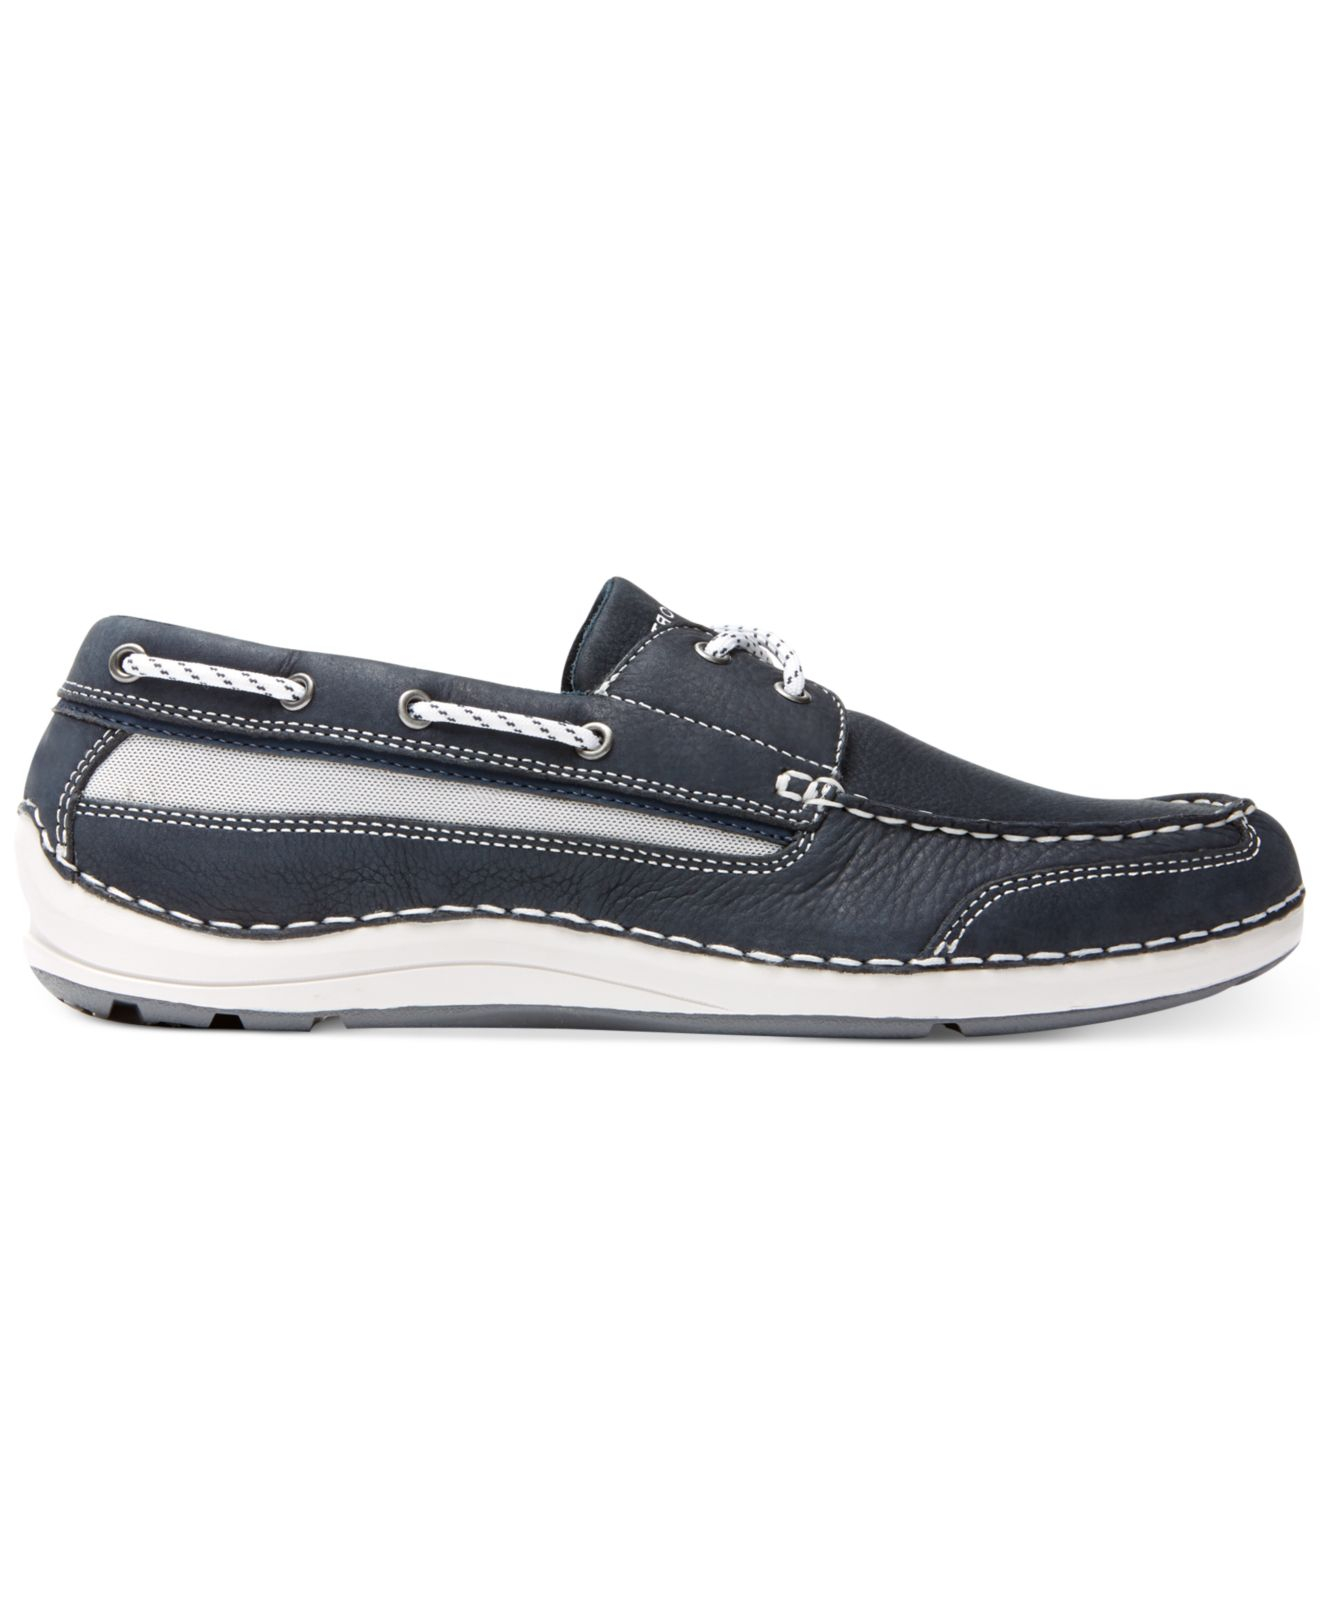 Rockport Men S Shoes Lightweight